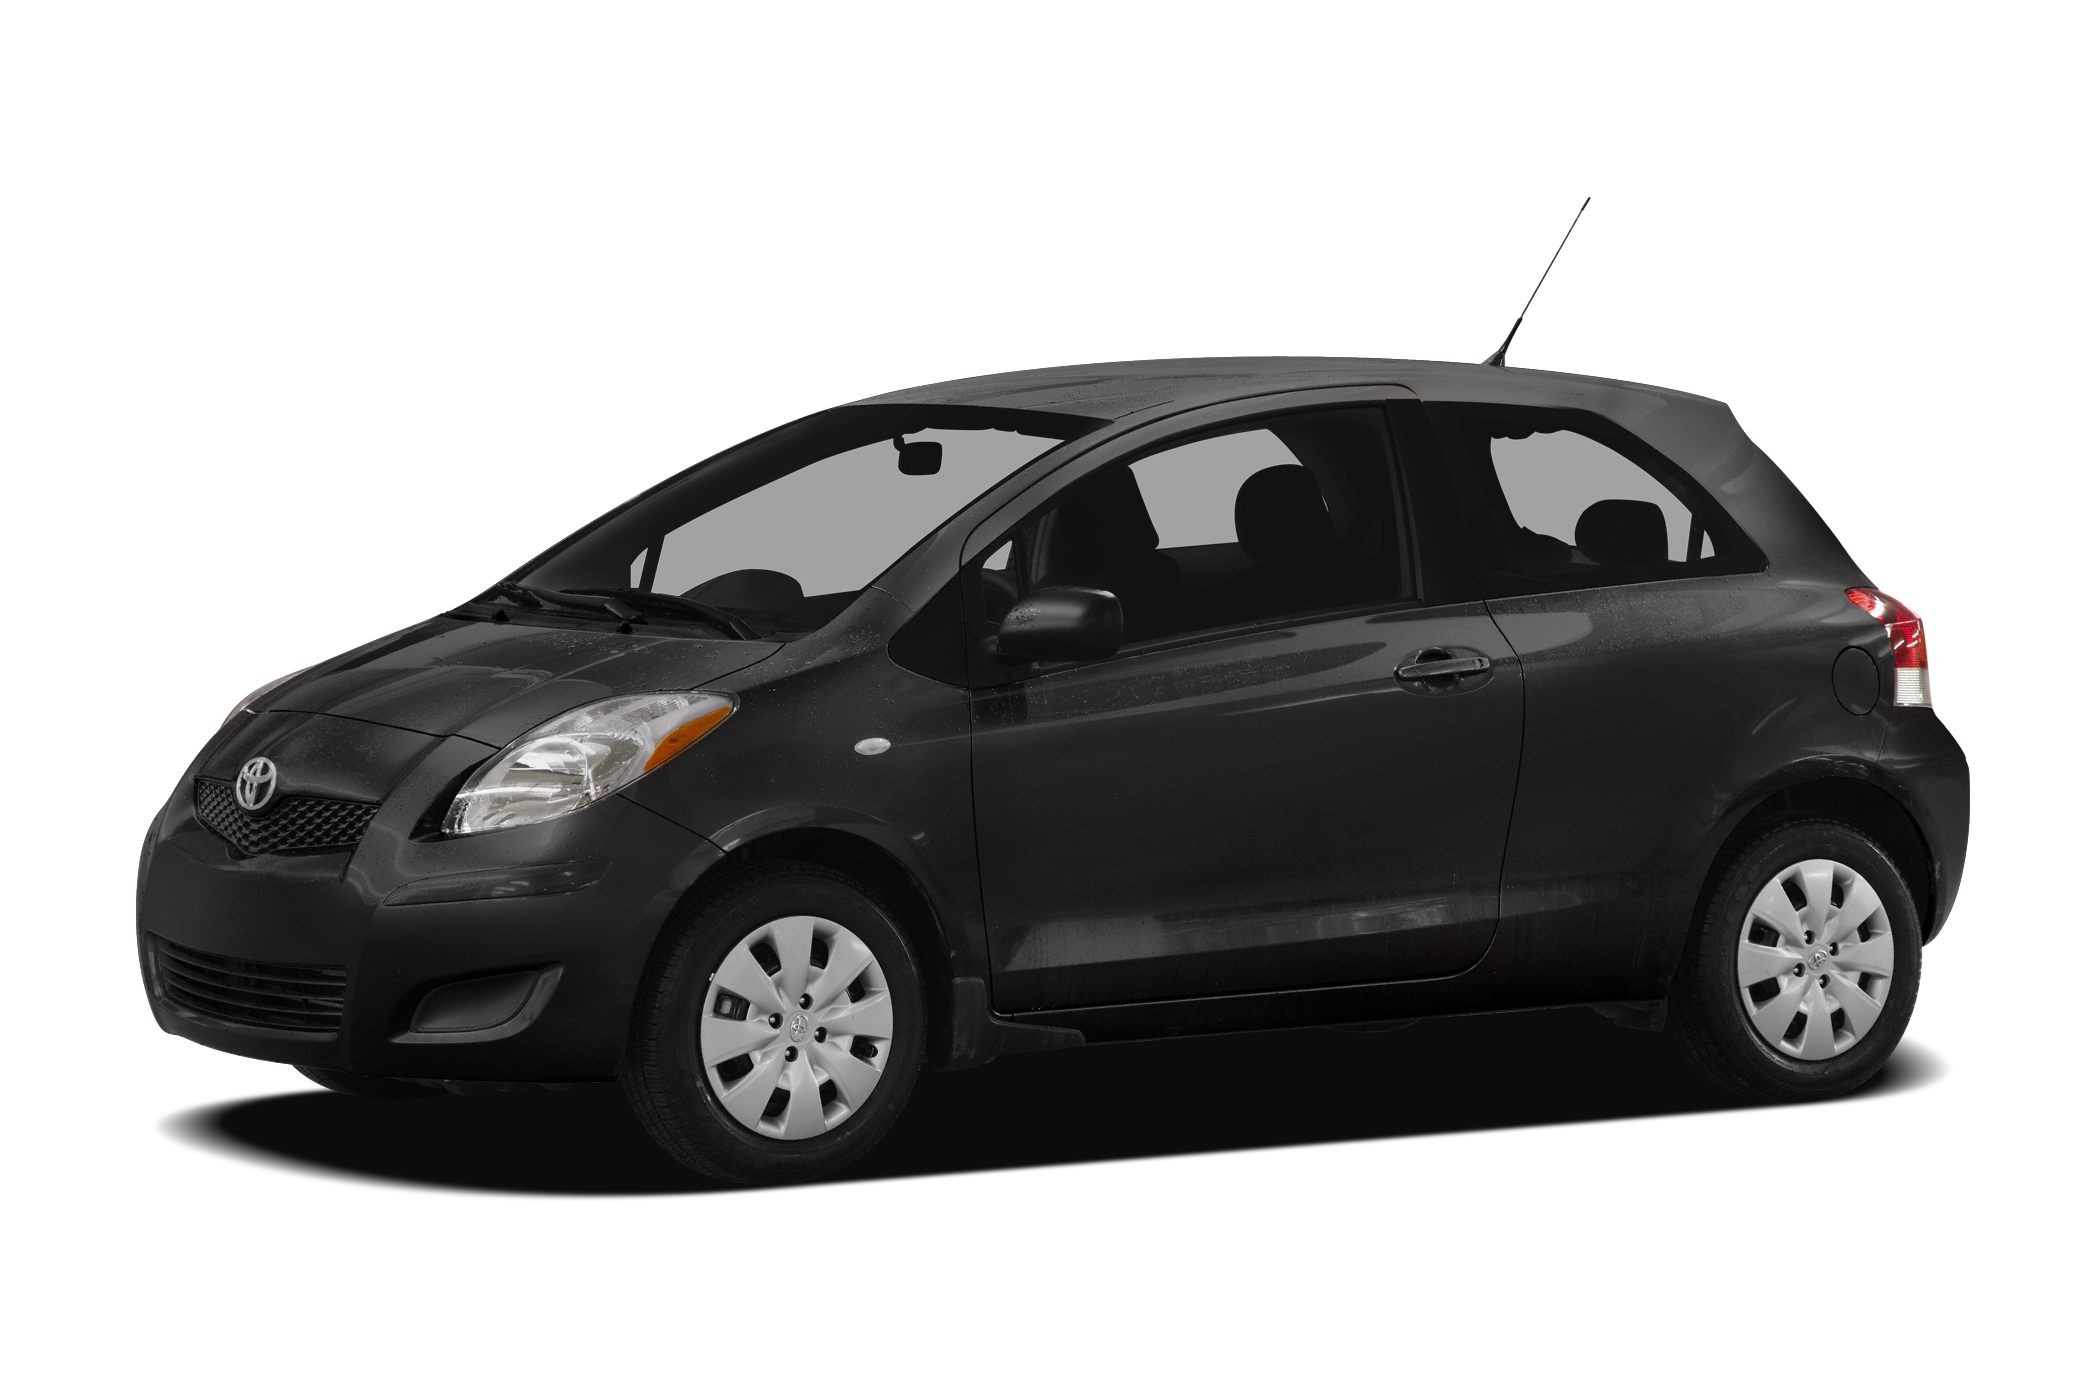 2009 Toyota Yaris Sedan for sale in Frederick for $6,995 with 105,307 miles